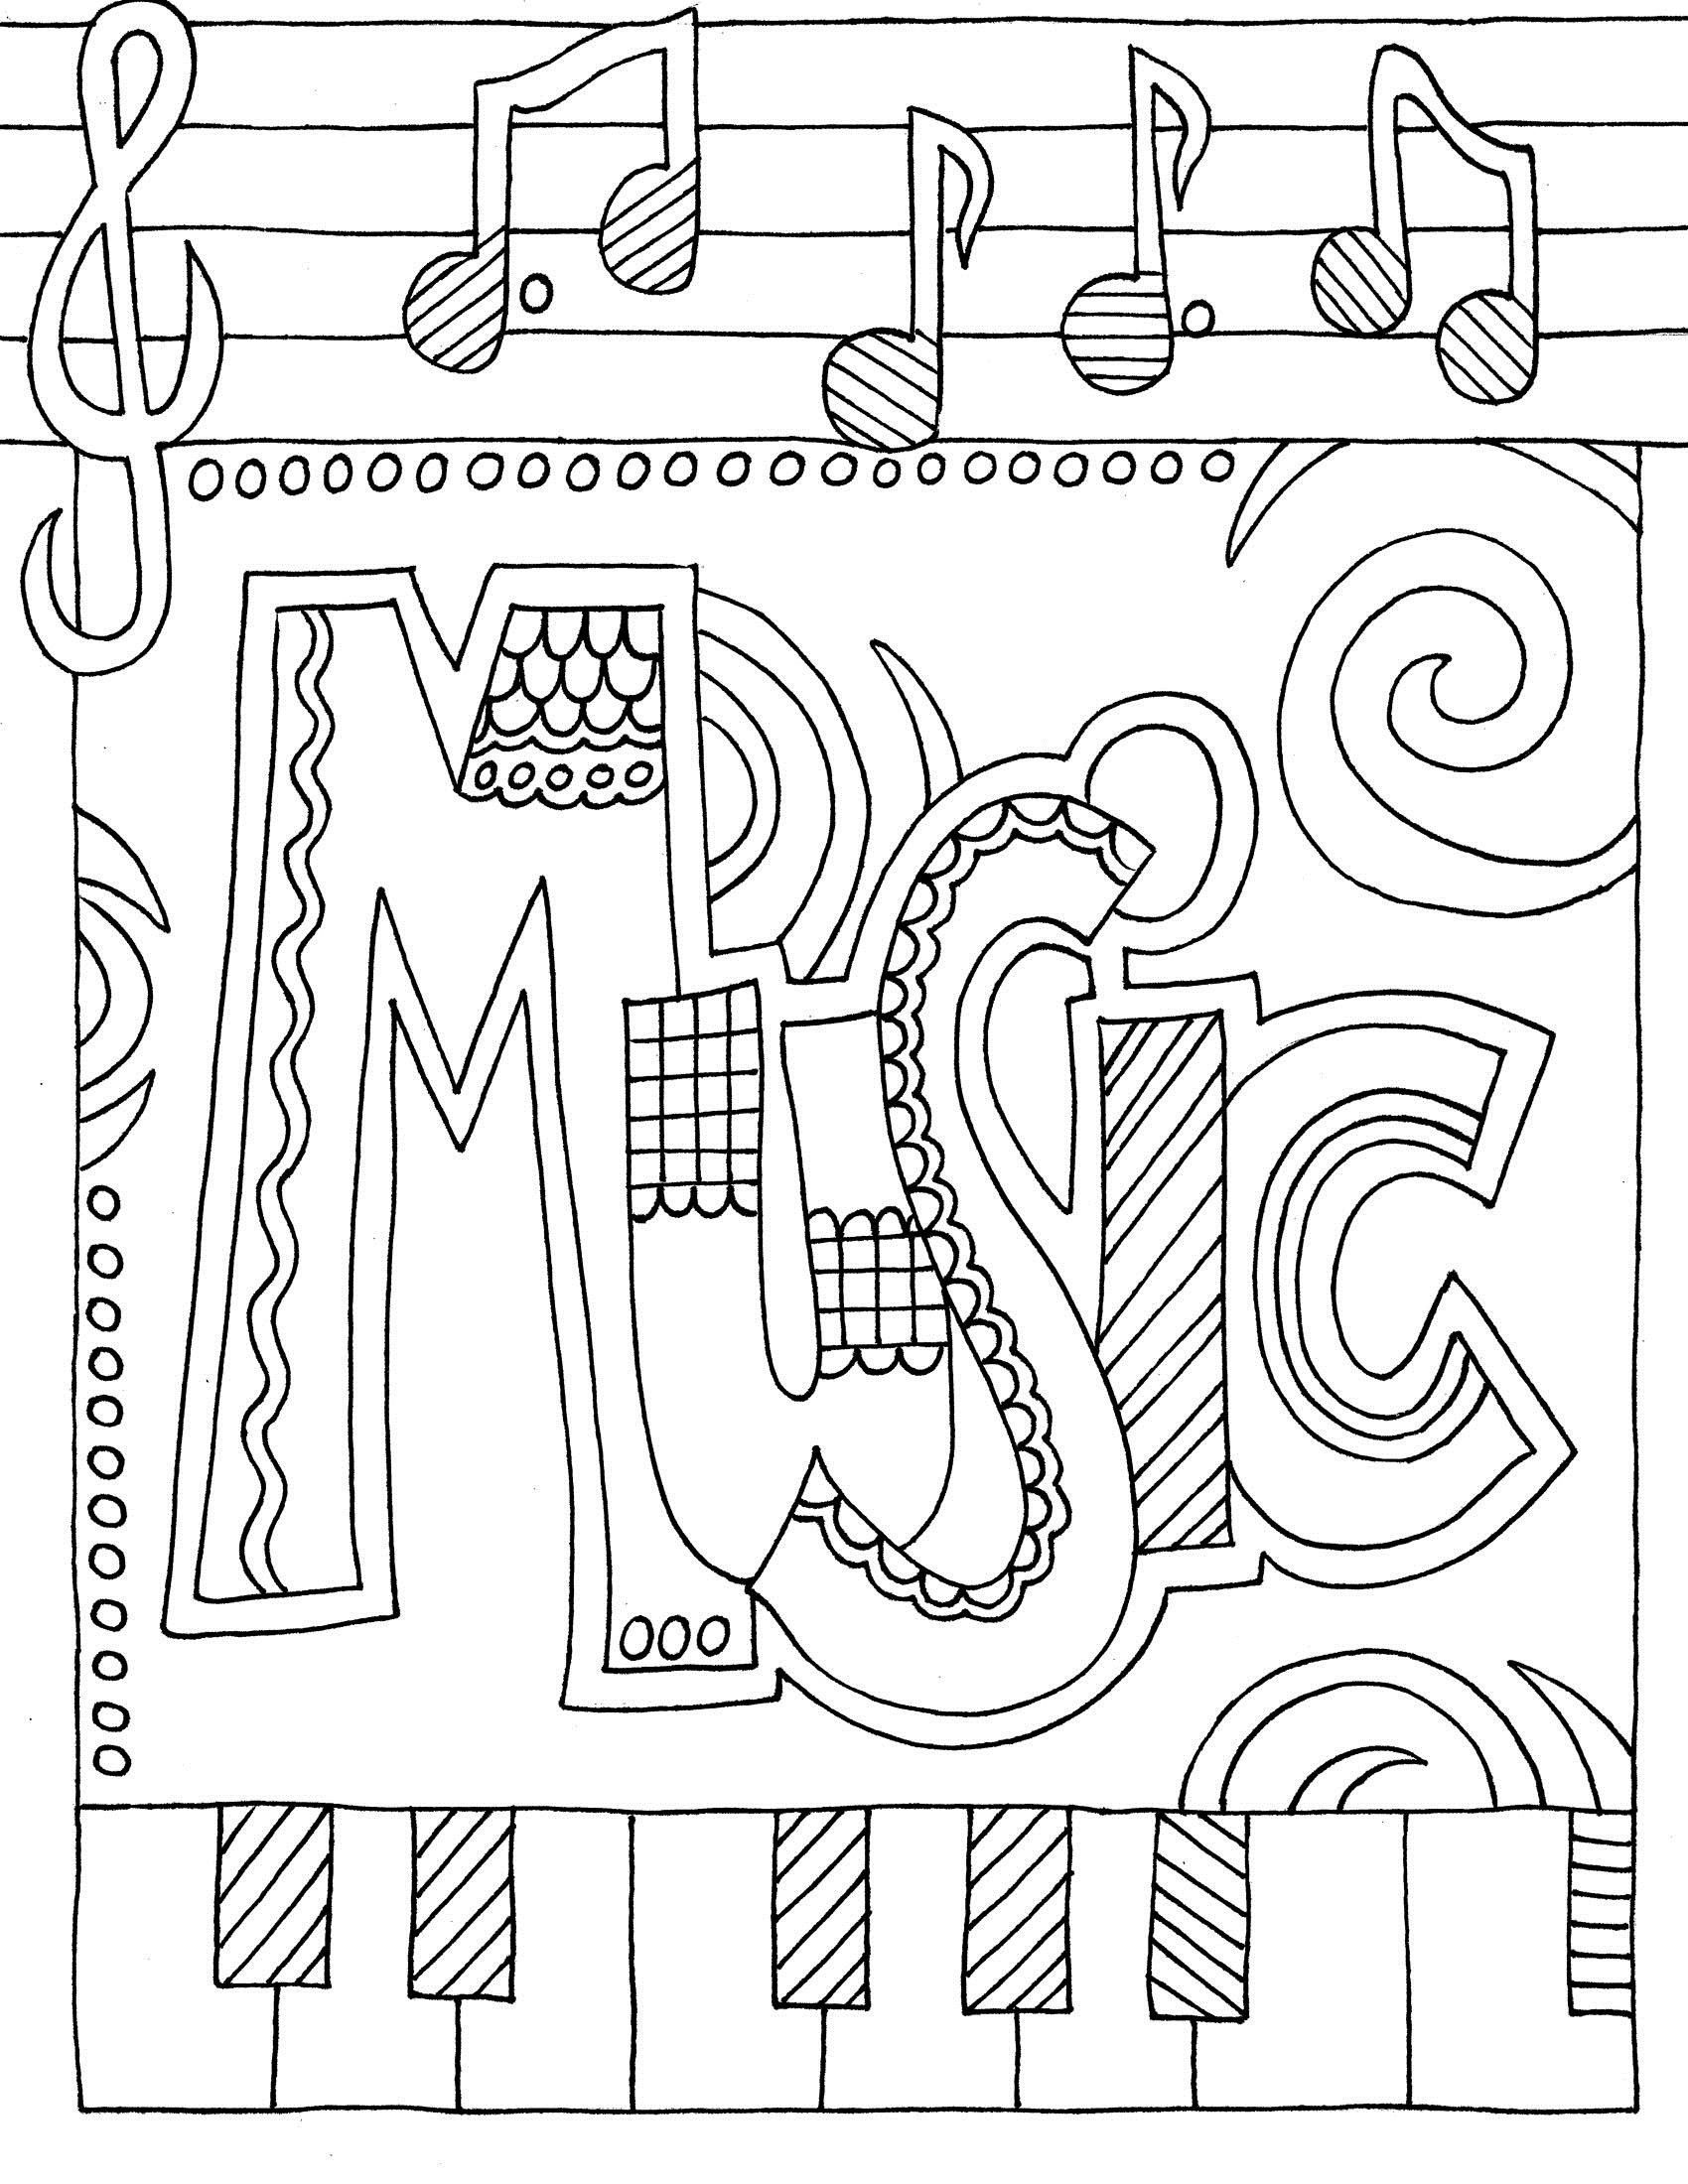 These are the BEST coloring pages for elementary school kids free